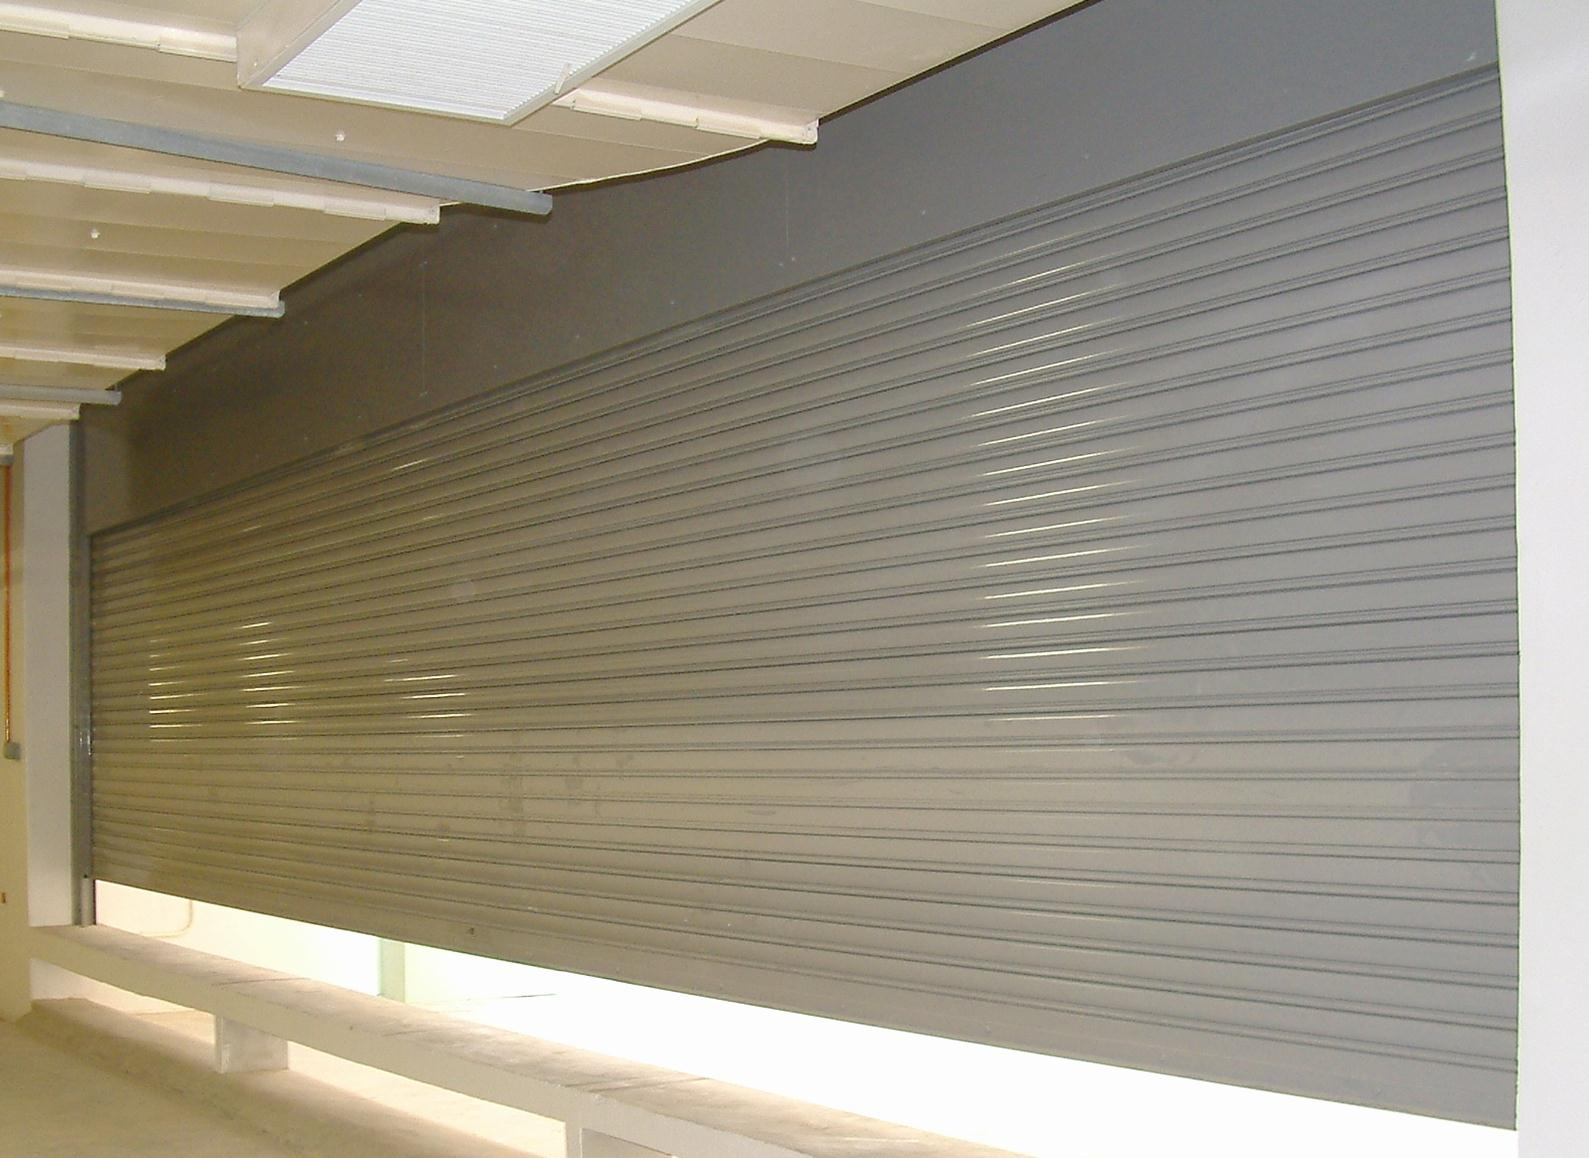 Insulated Roller Shutter Ferco Shutters Doors And Seating Specialist Rolling Motor Control